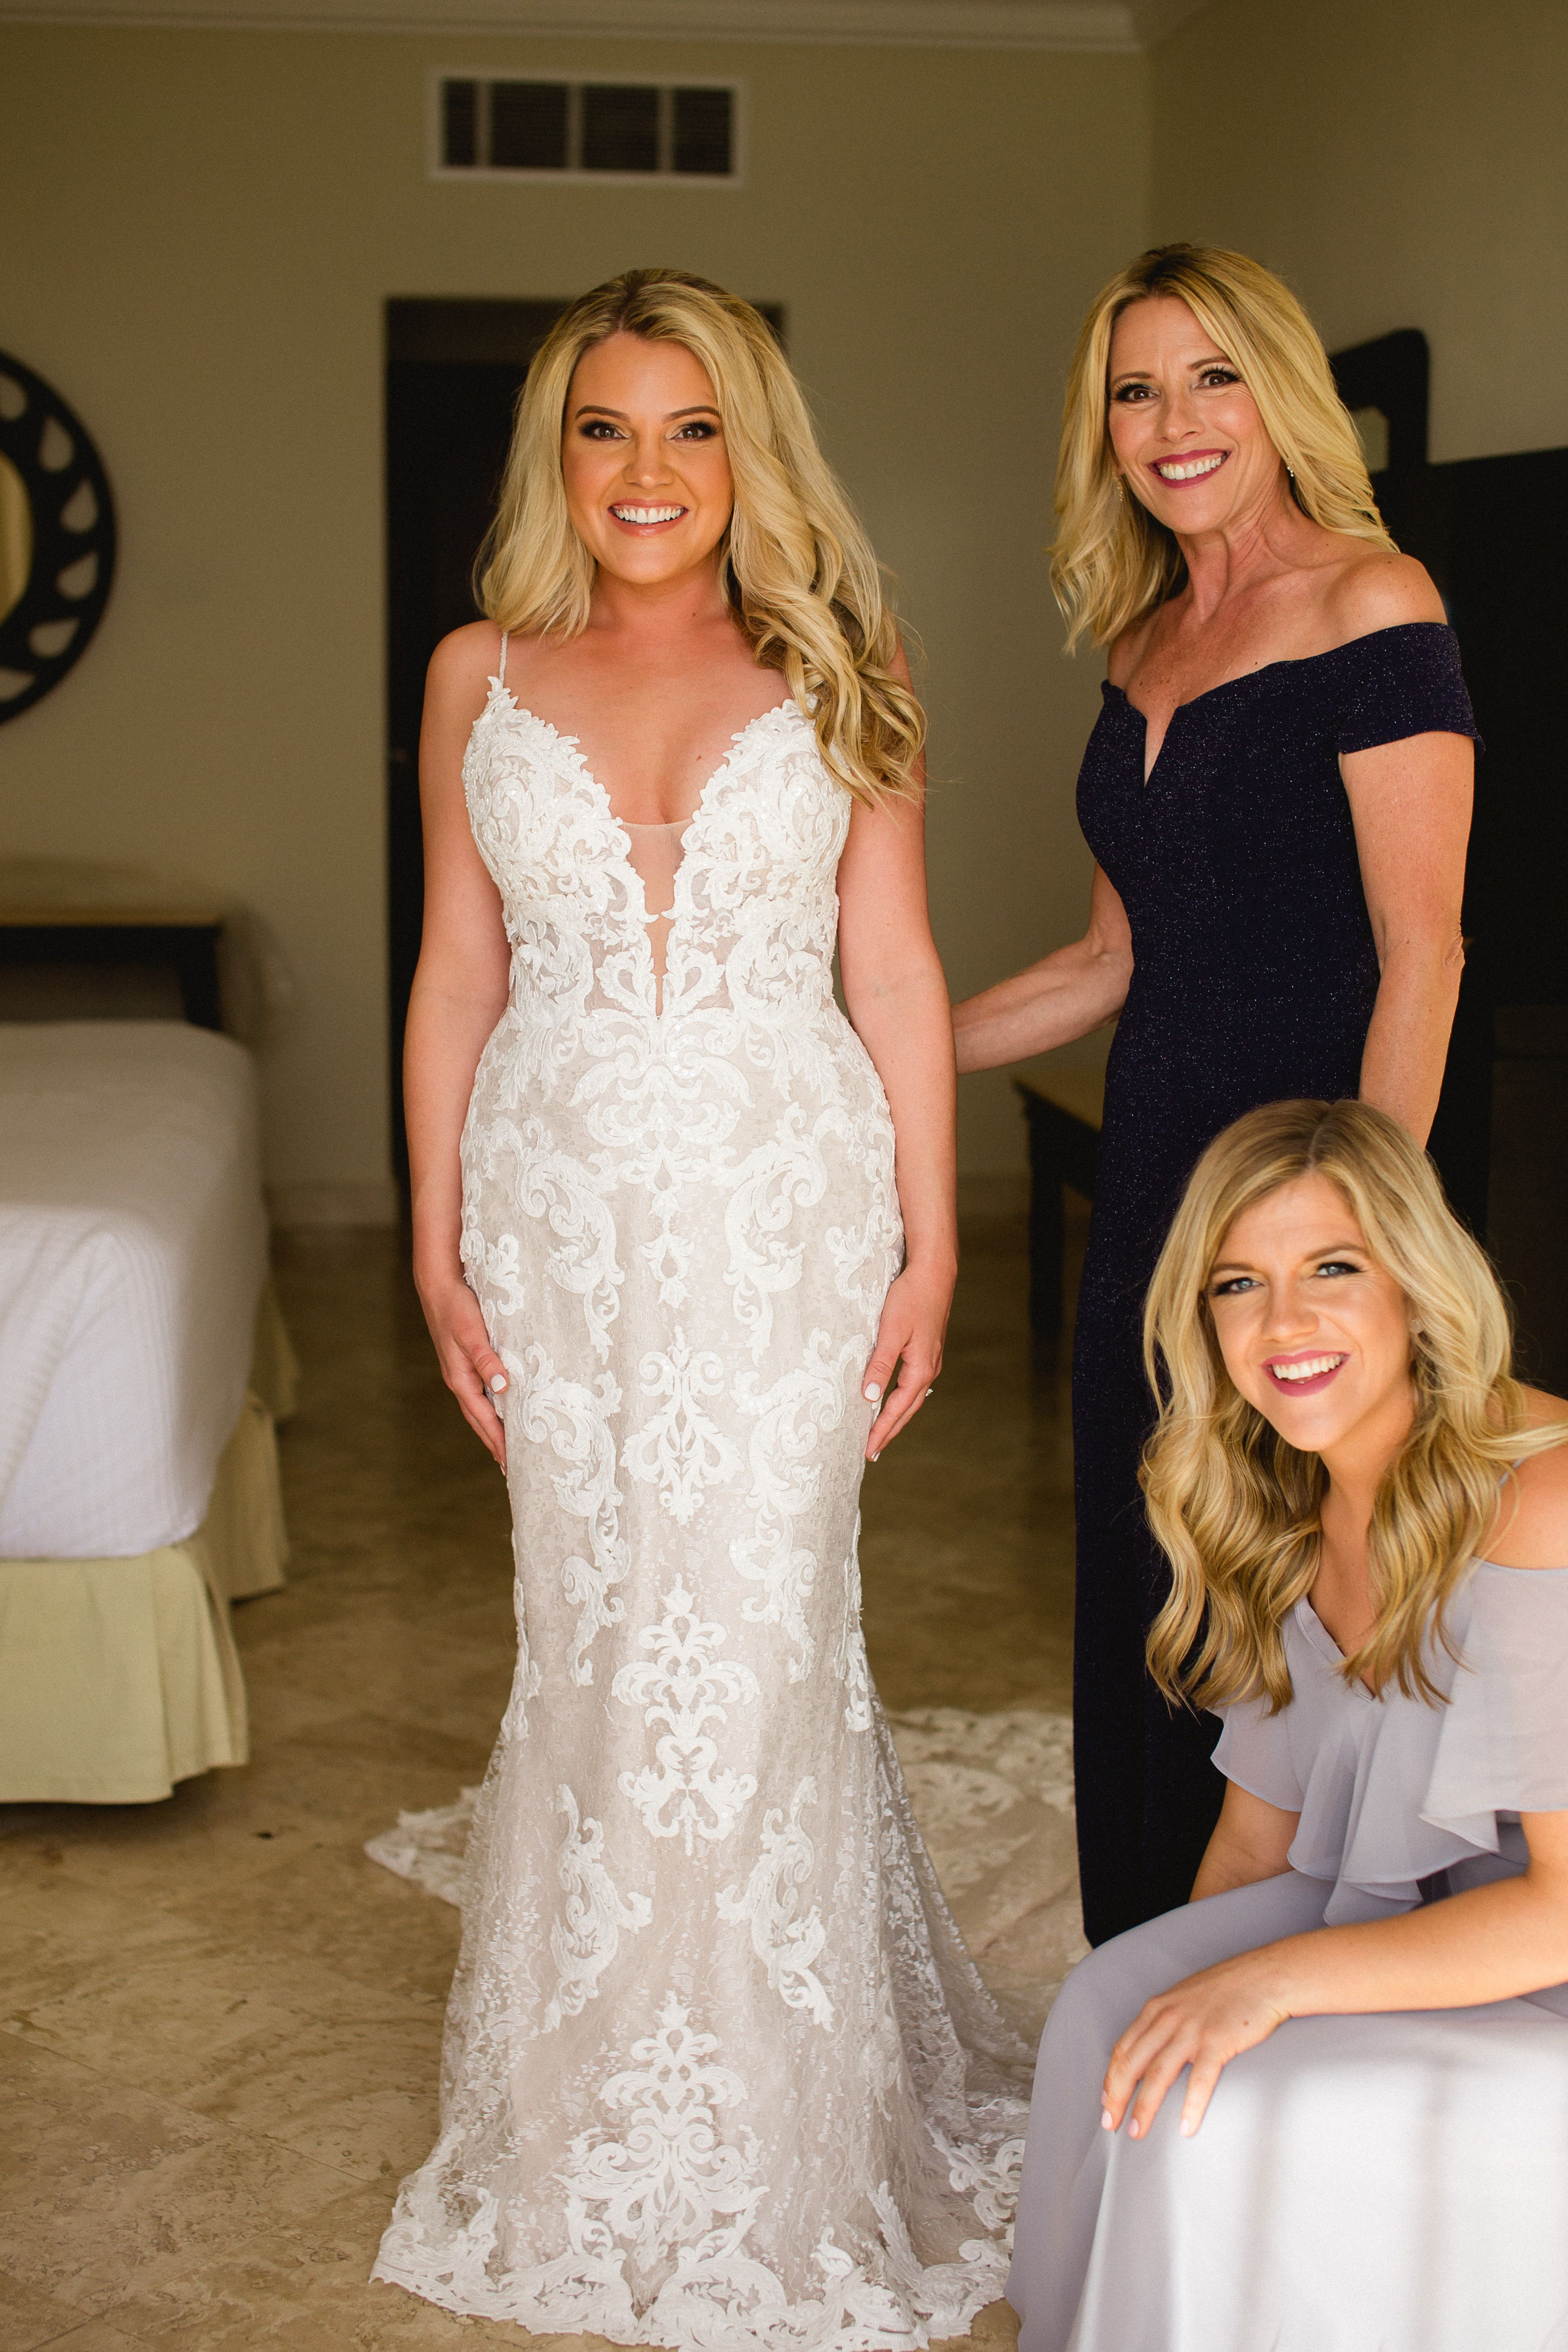 9cf1b7f635a1 Real bride, Megan Renfroe looking amazing in the TUSCANY LYNETTE wedding  dress by Maggie Sottero! A heart-stopping romantic sheath bridal gown with  sexy ...